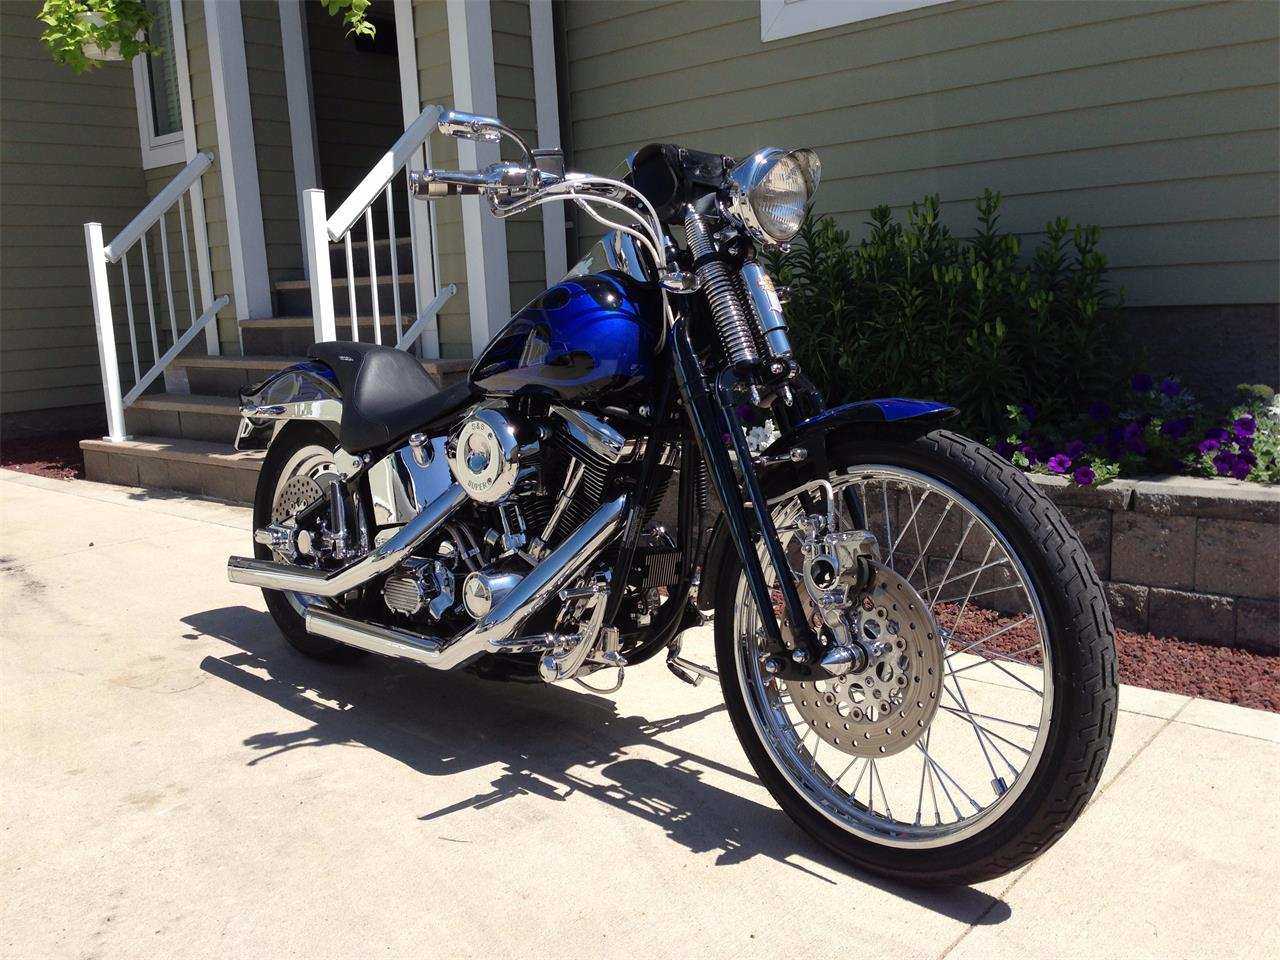 Large Picture of 1996 Harley-Davidson Motorcycle located in Moose Jaw Saskatchewan - $13,600.00 Offered by a Private Seller - QBI5